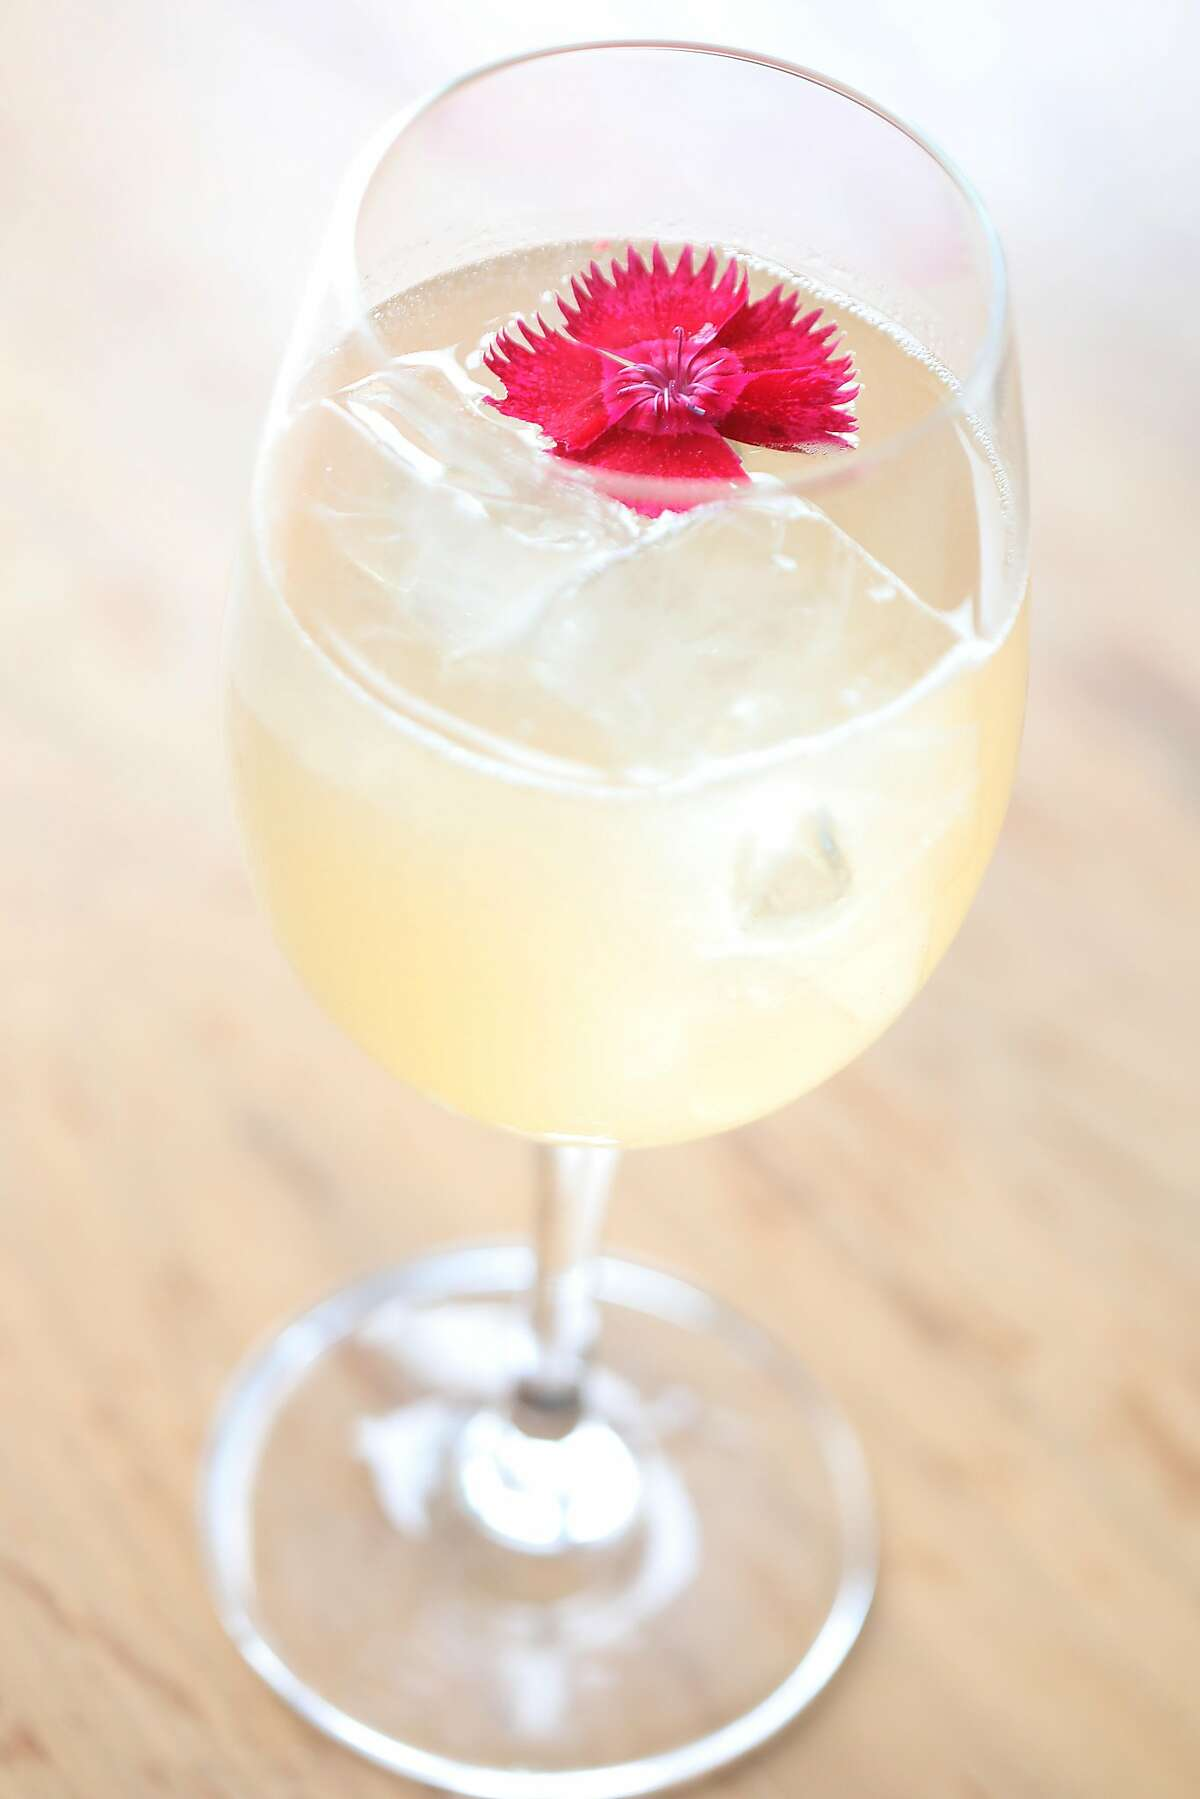 Farewell to Spring served at Pearl, a restaurant in the outer Richmond with a serious cocktail program on Friday, Sept. 21, 2018 in San Francisco, Calif.